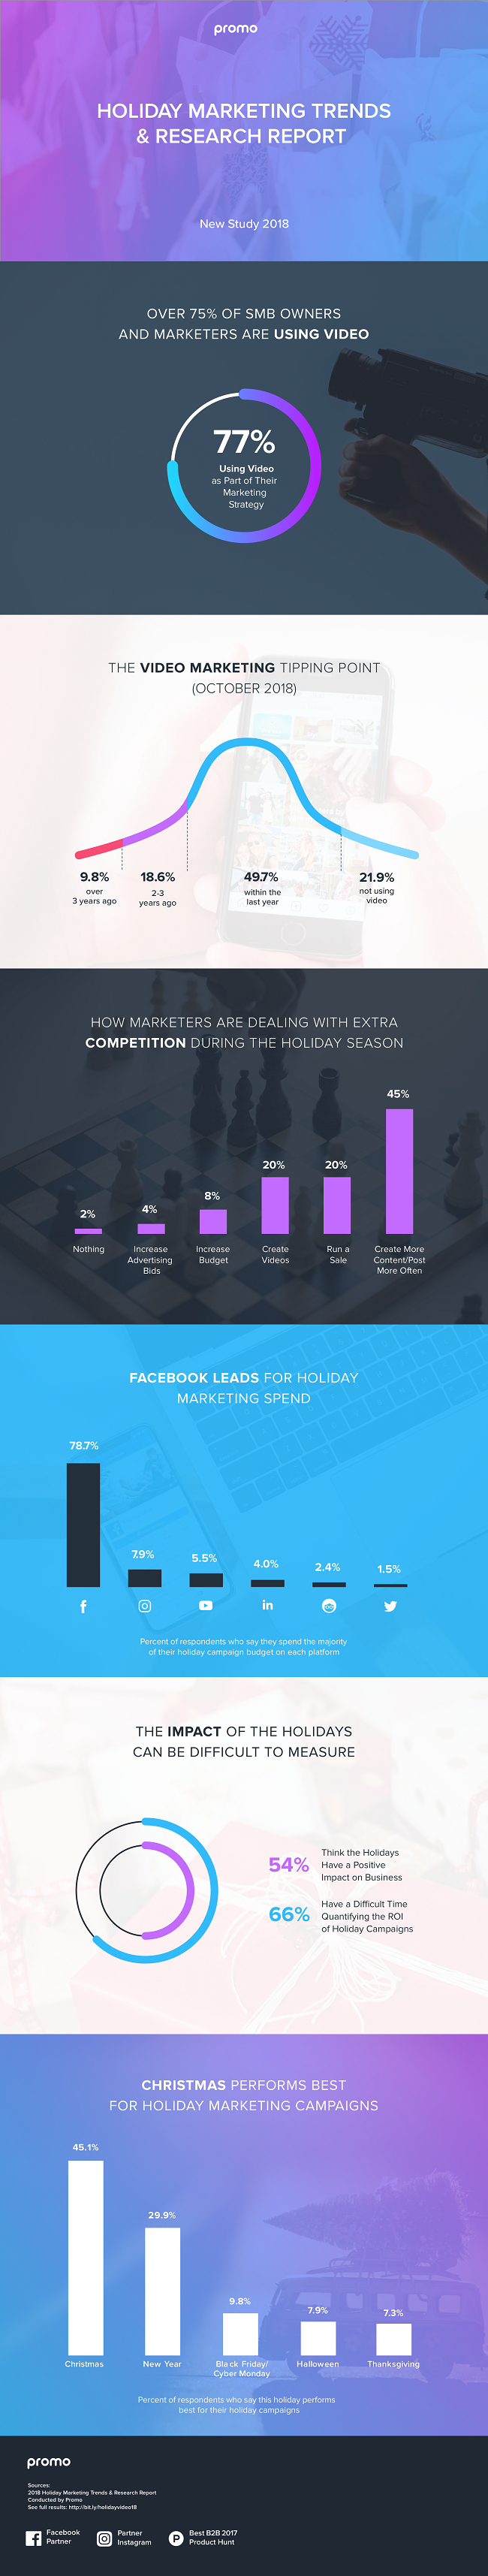 Infographic: Top Holiday Marketing Trends